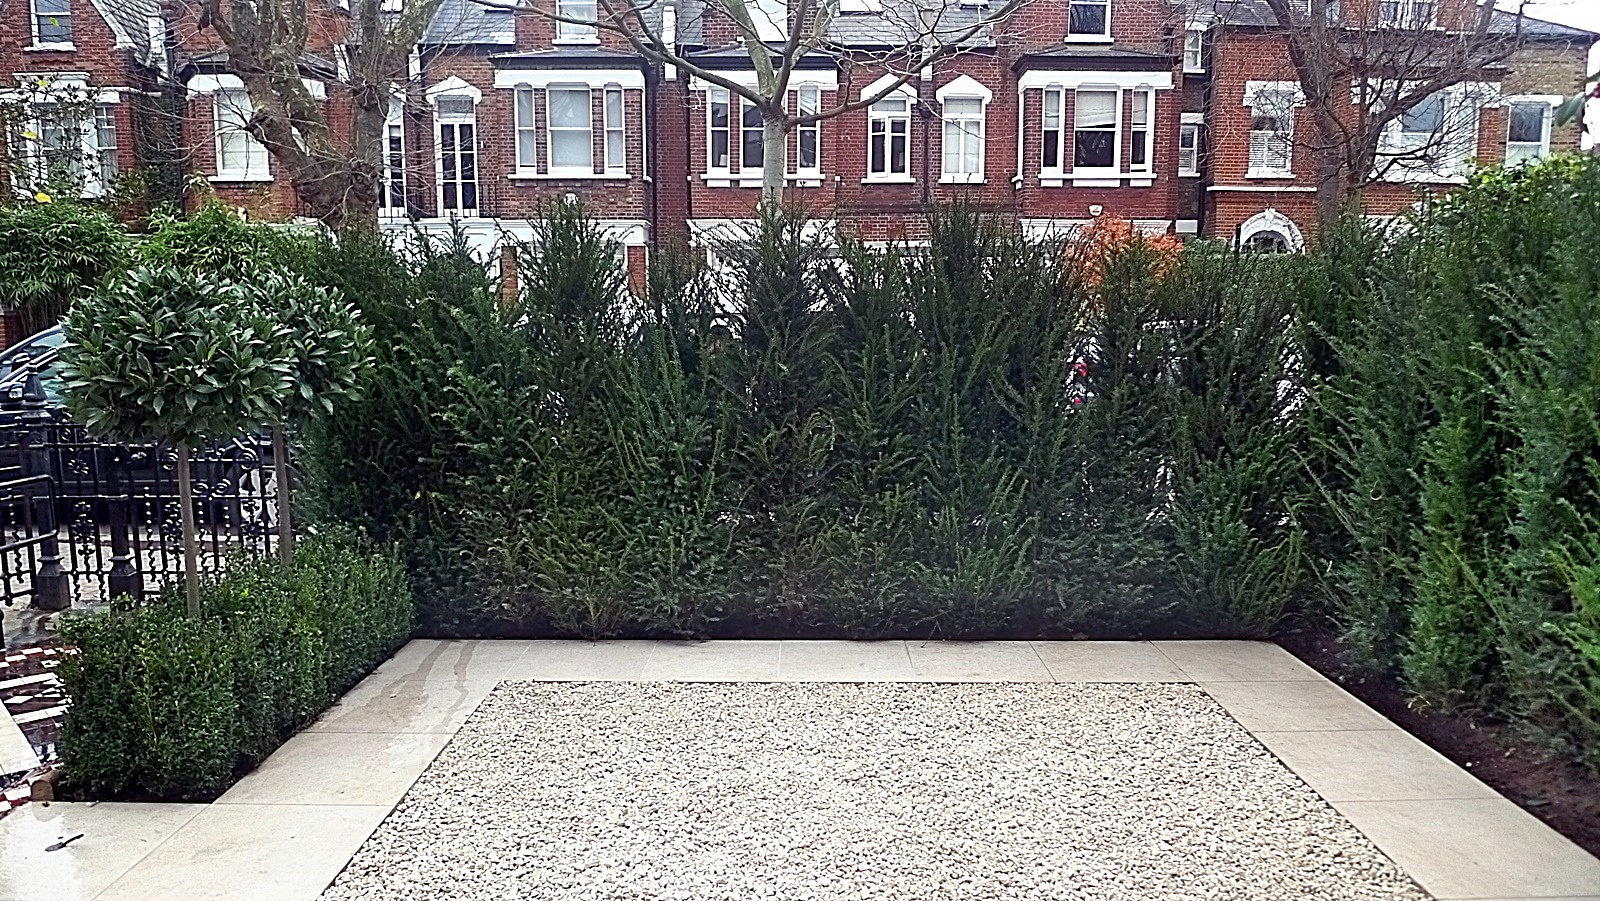 Battersea London tile formal bay trees Yew trees topiary Balham Clapham